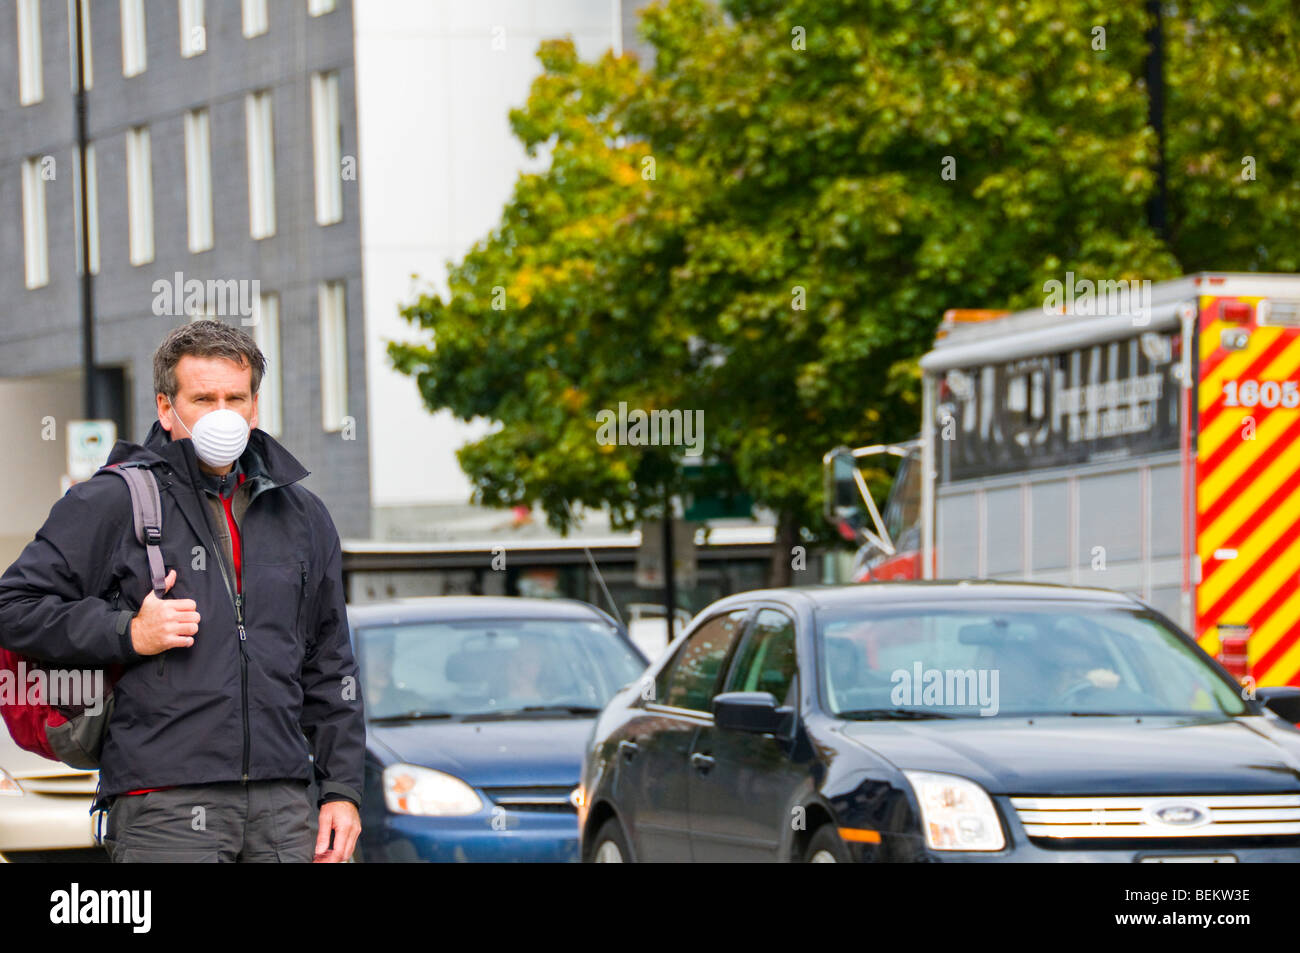 Man wearing a protective swine flu mask - Stock Image